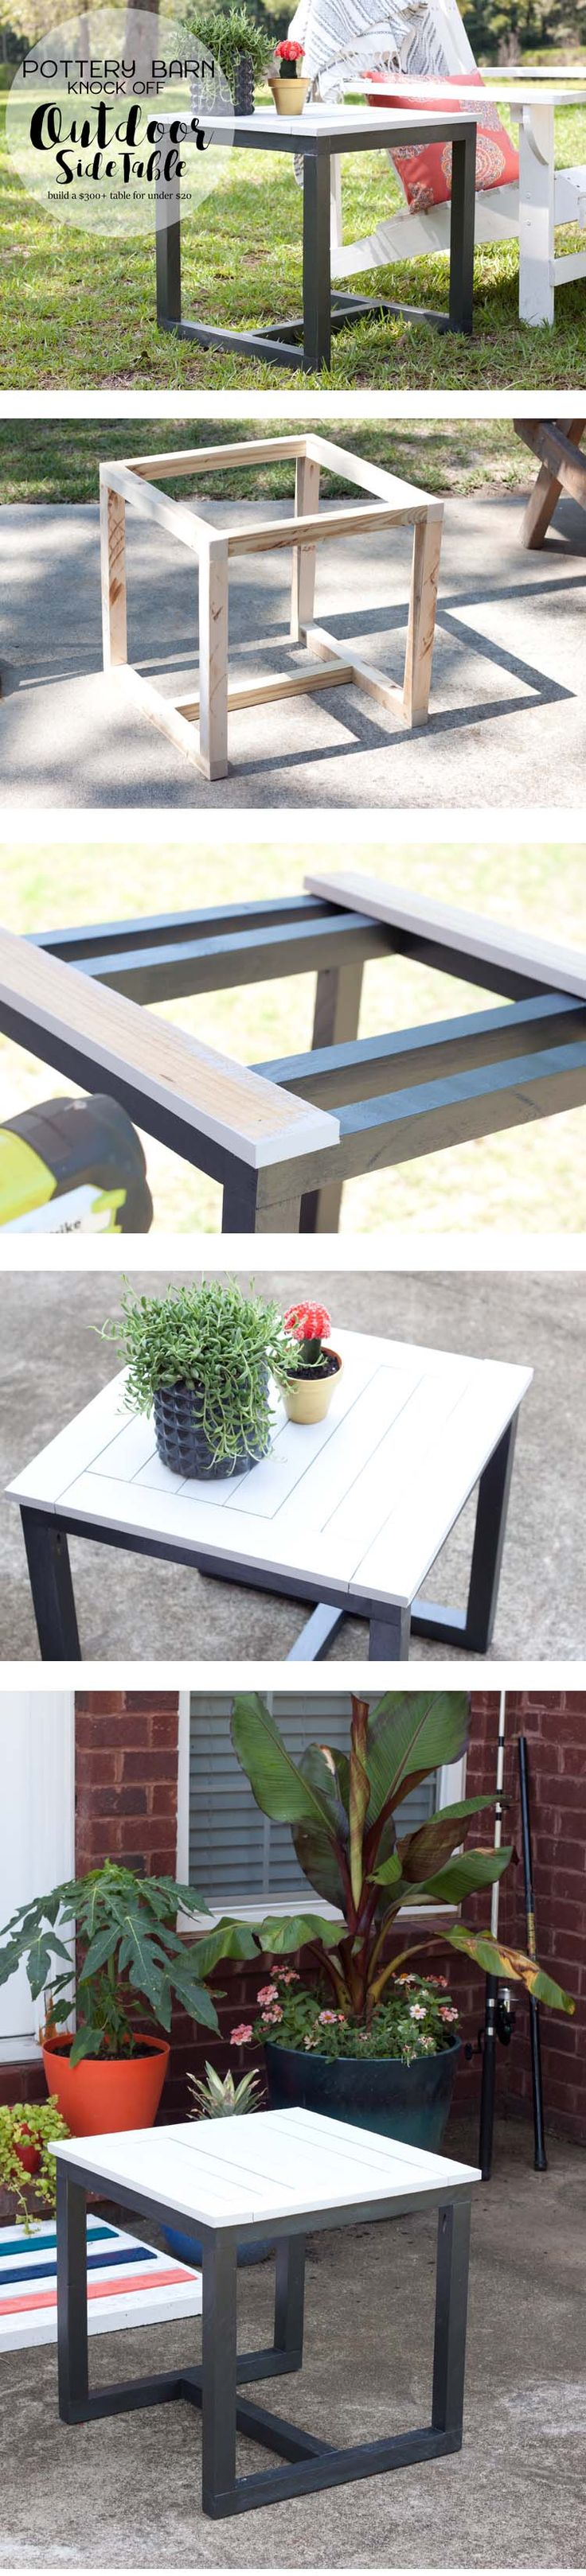 DIY Outdoor Side Table Diy Furniture ProjectsFurniture